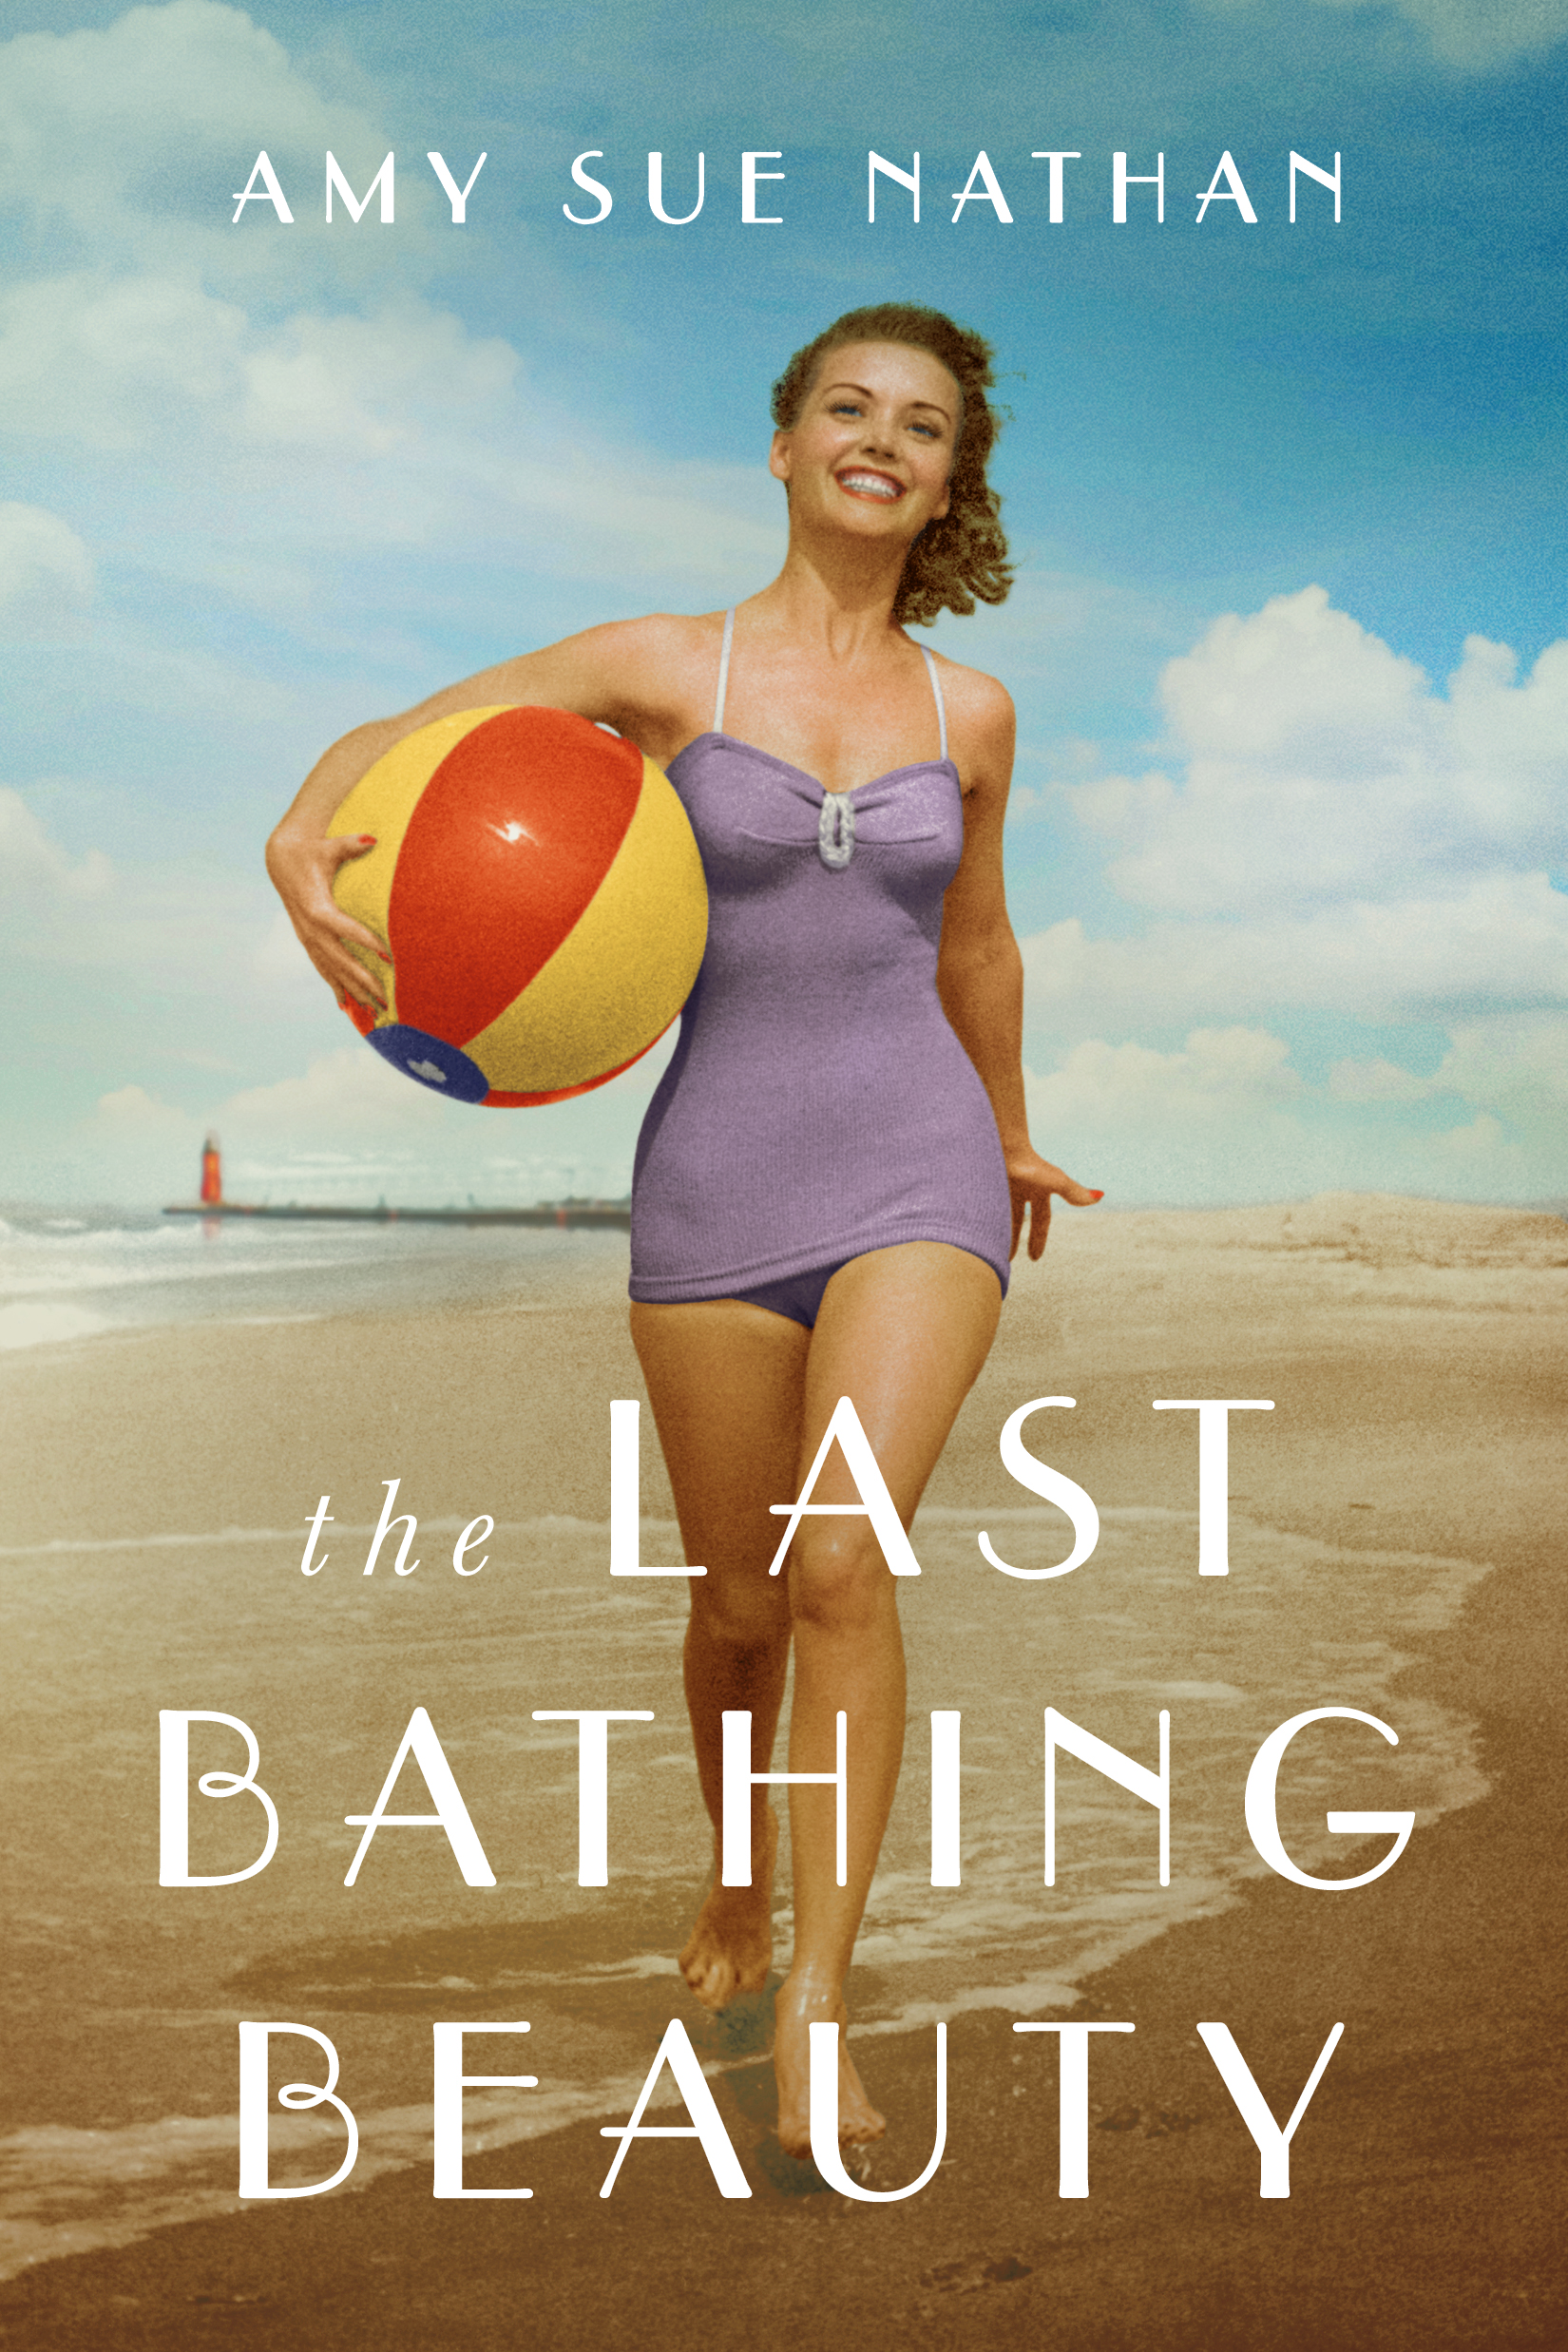 The Last Bathing Beauty - Amy Sue Nathan